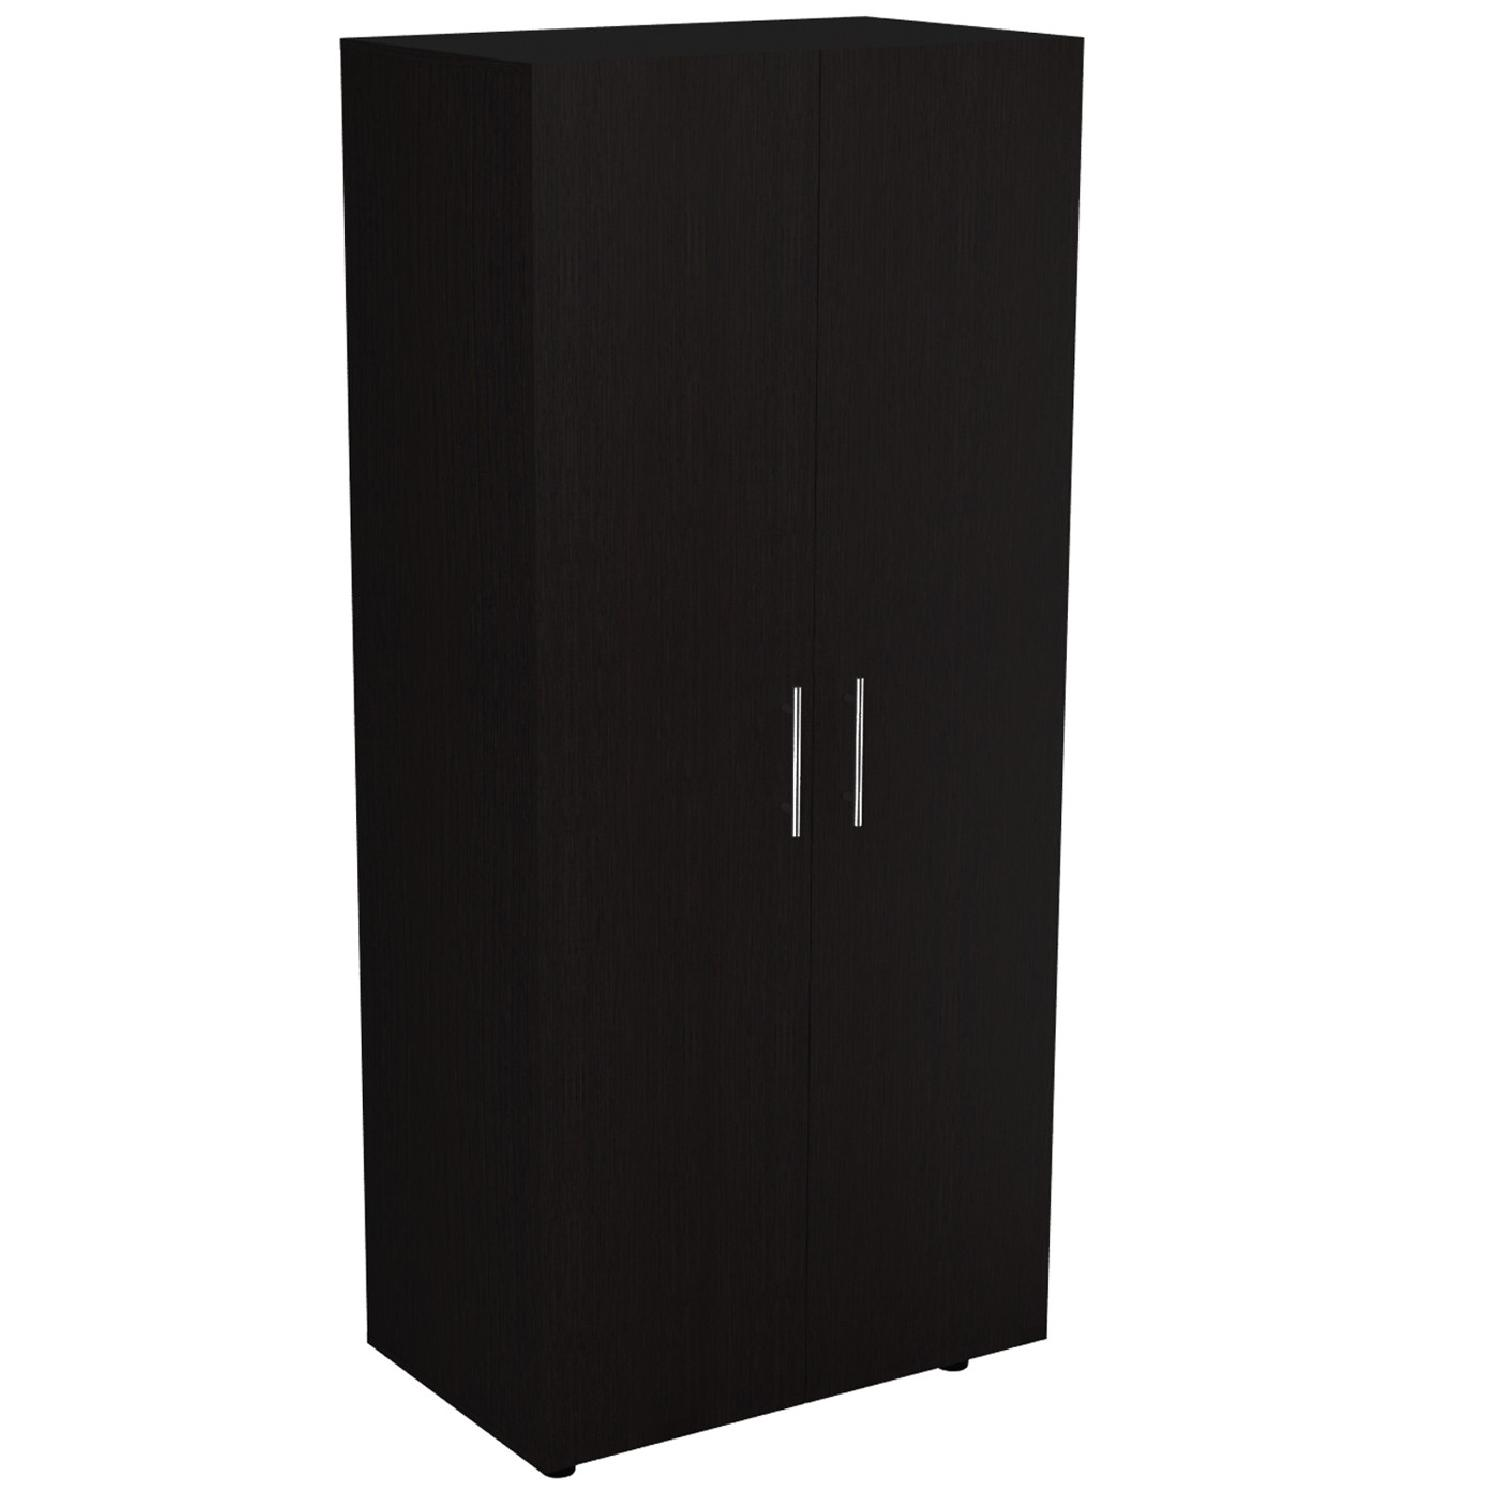 RTA Design Tera Collection 2-Doors Modern Wardrobe in Black Espresso Wenge